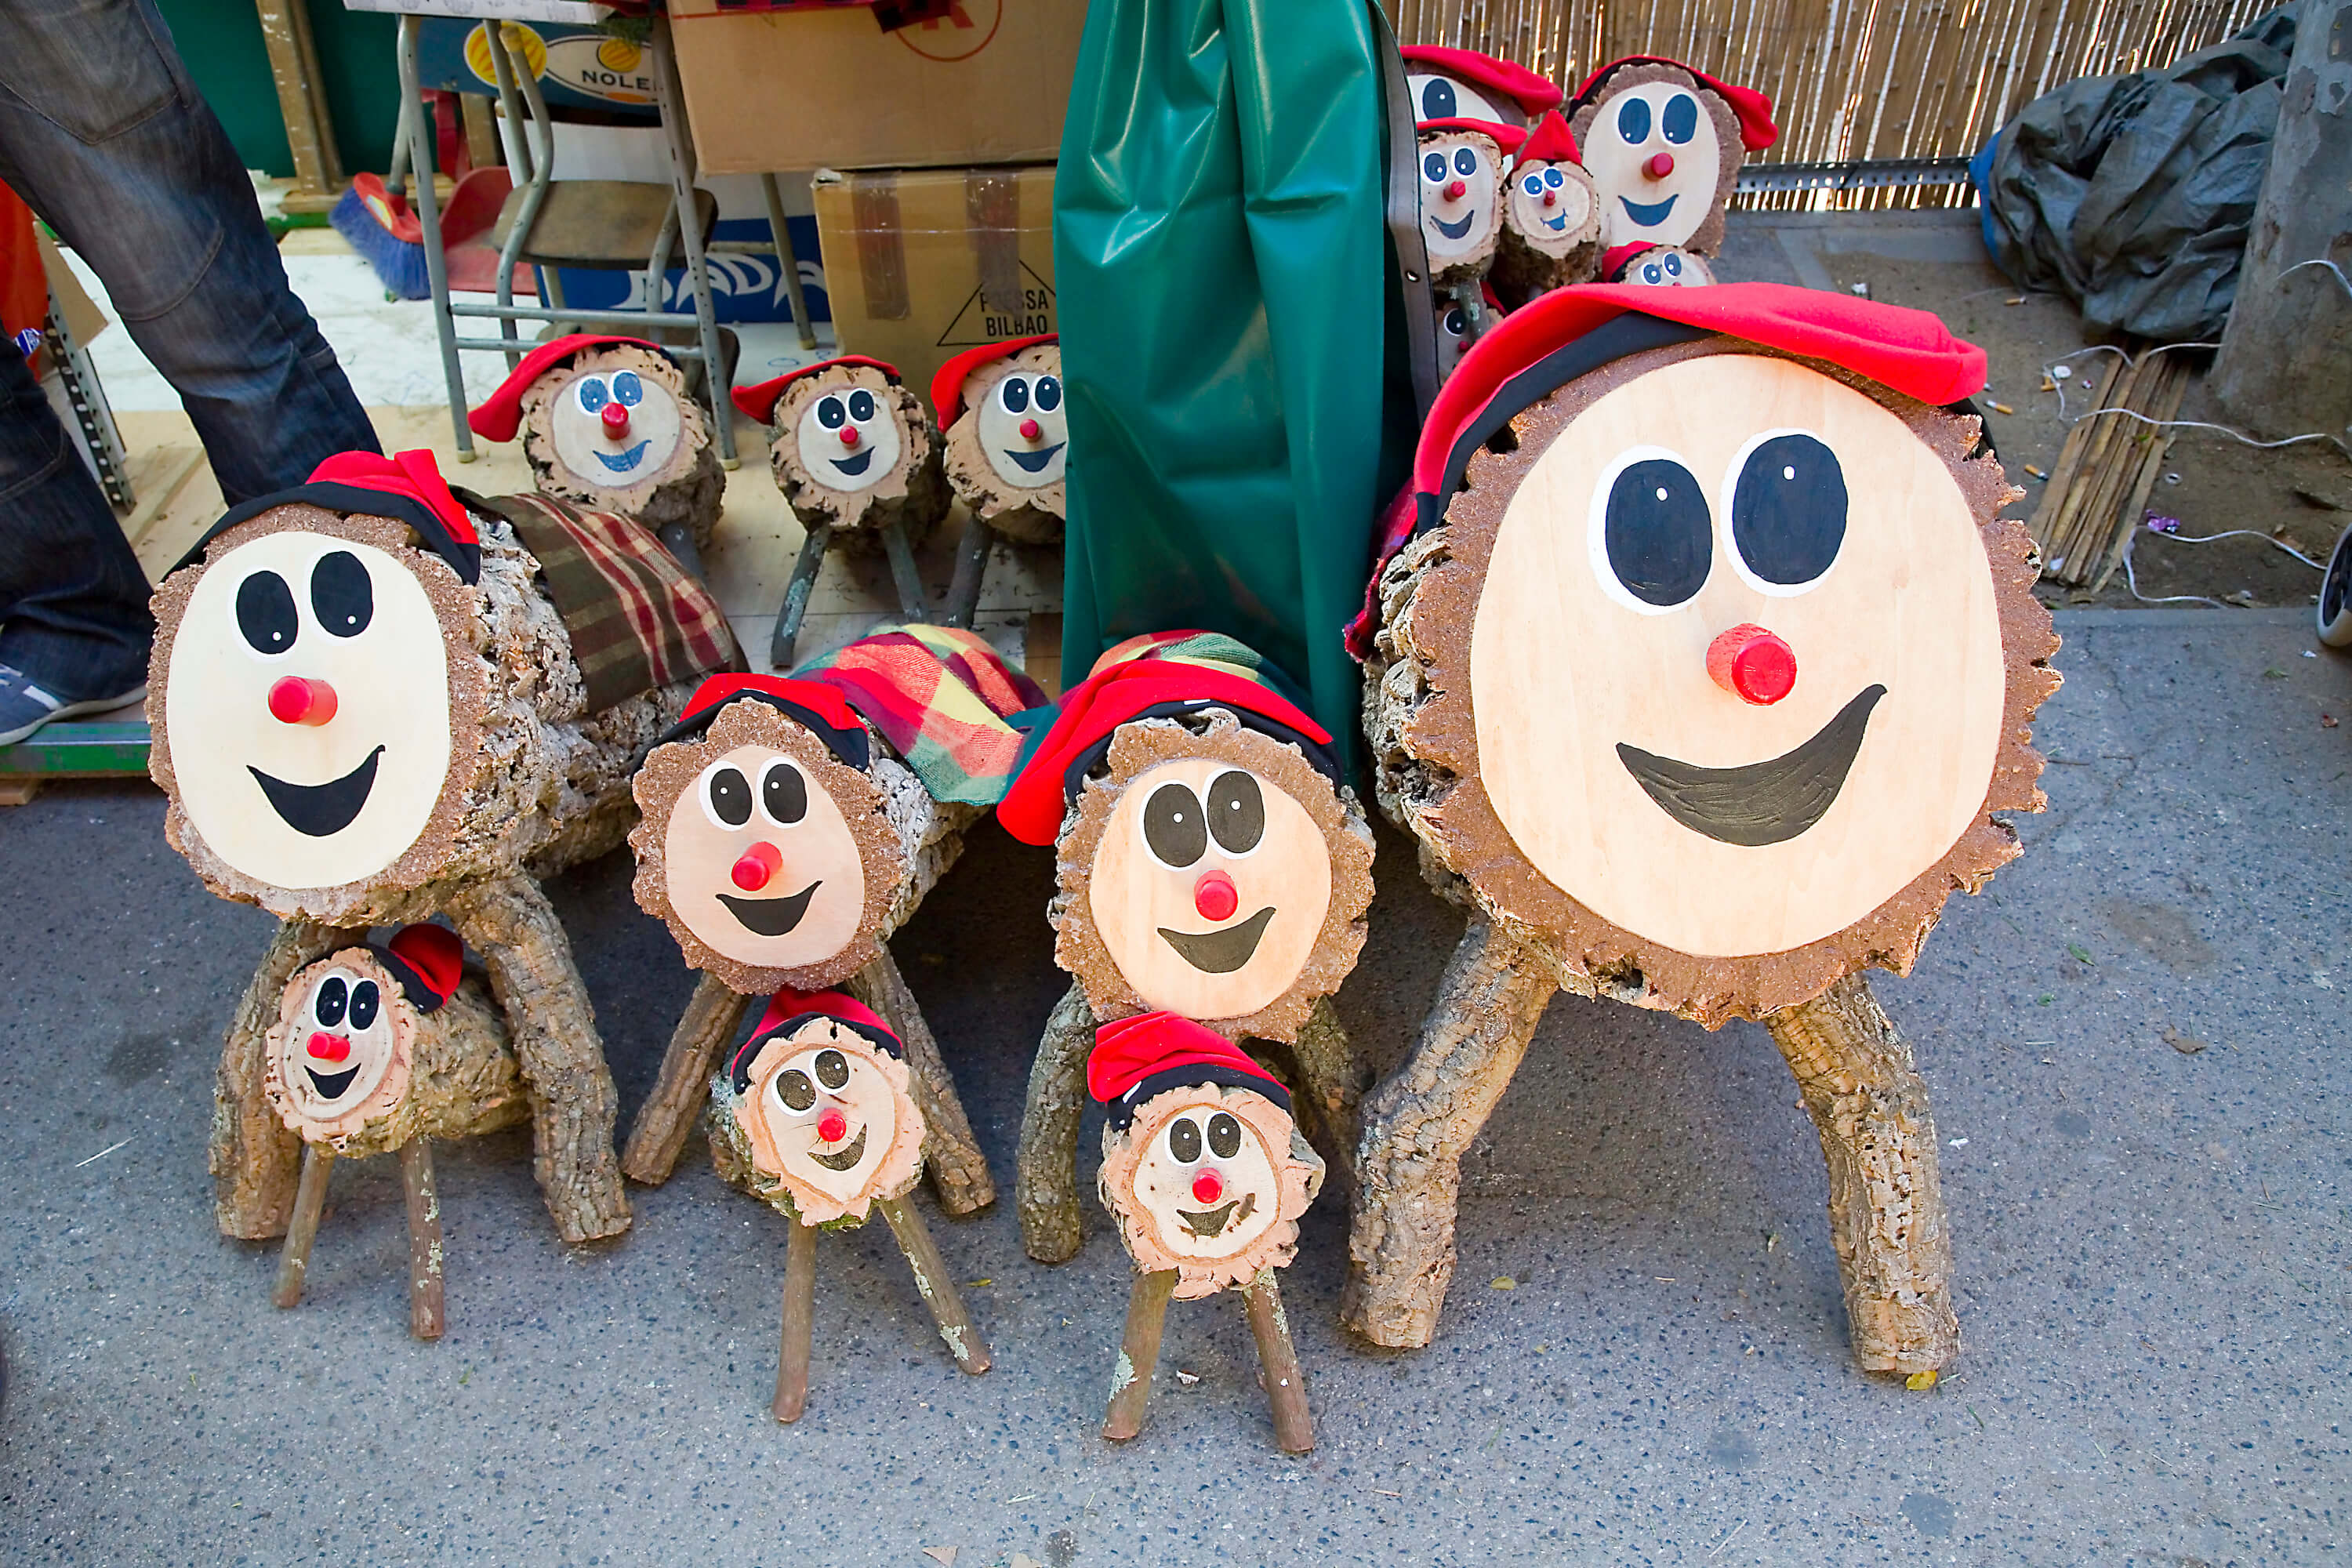 Christmas Traditions in Barcelona - Tio Caga or Tio de Nadal at the market